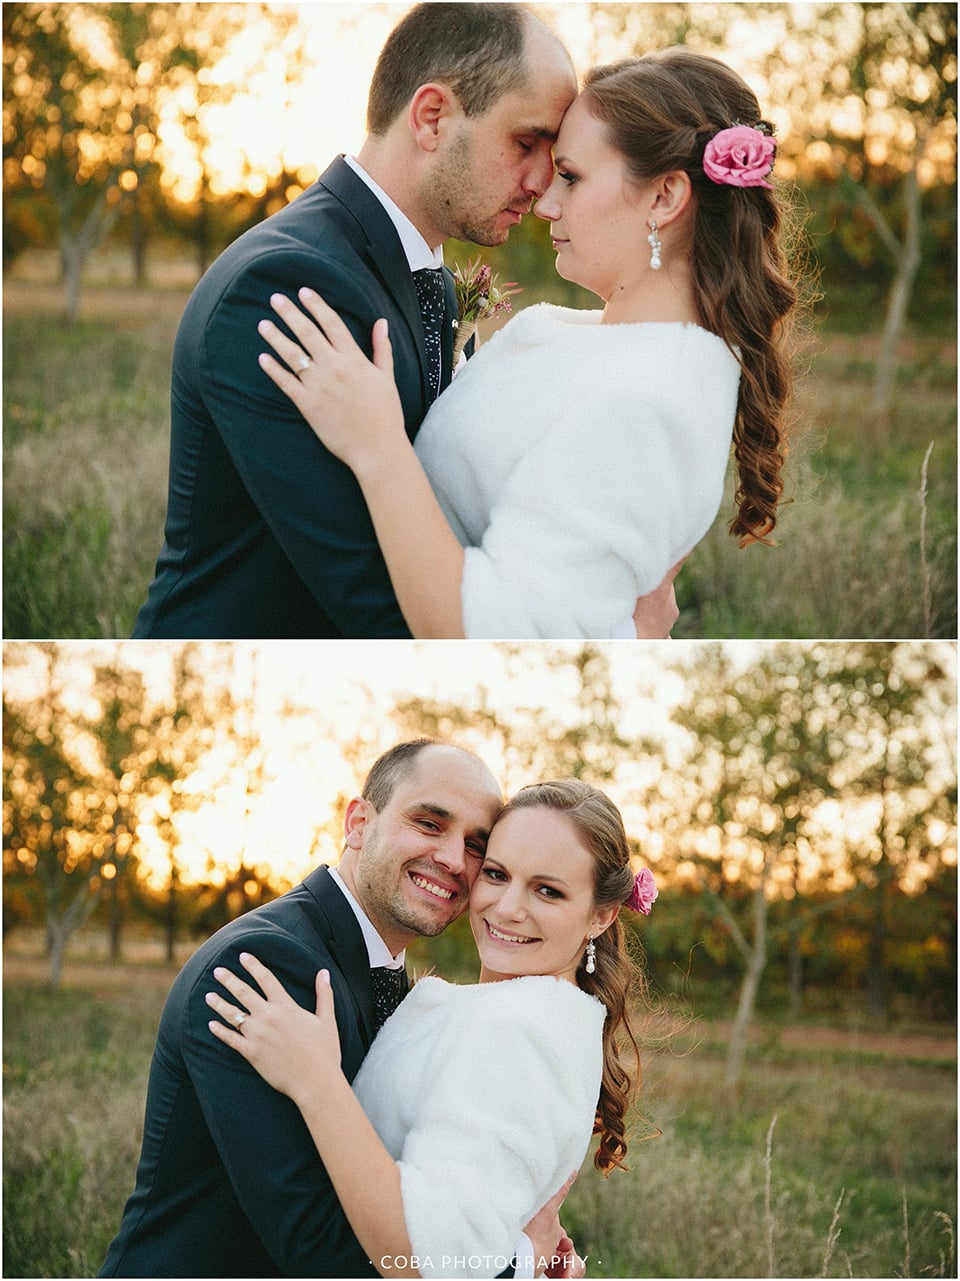 Cobus & Annerie - Towerbosch - Coba Photography (151)